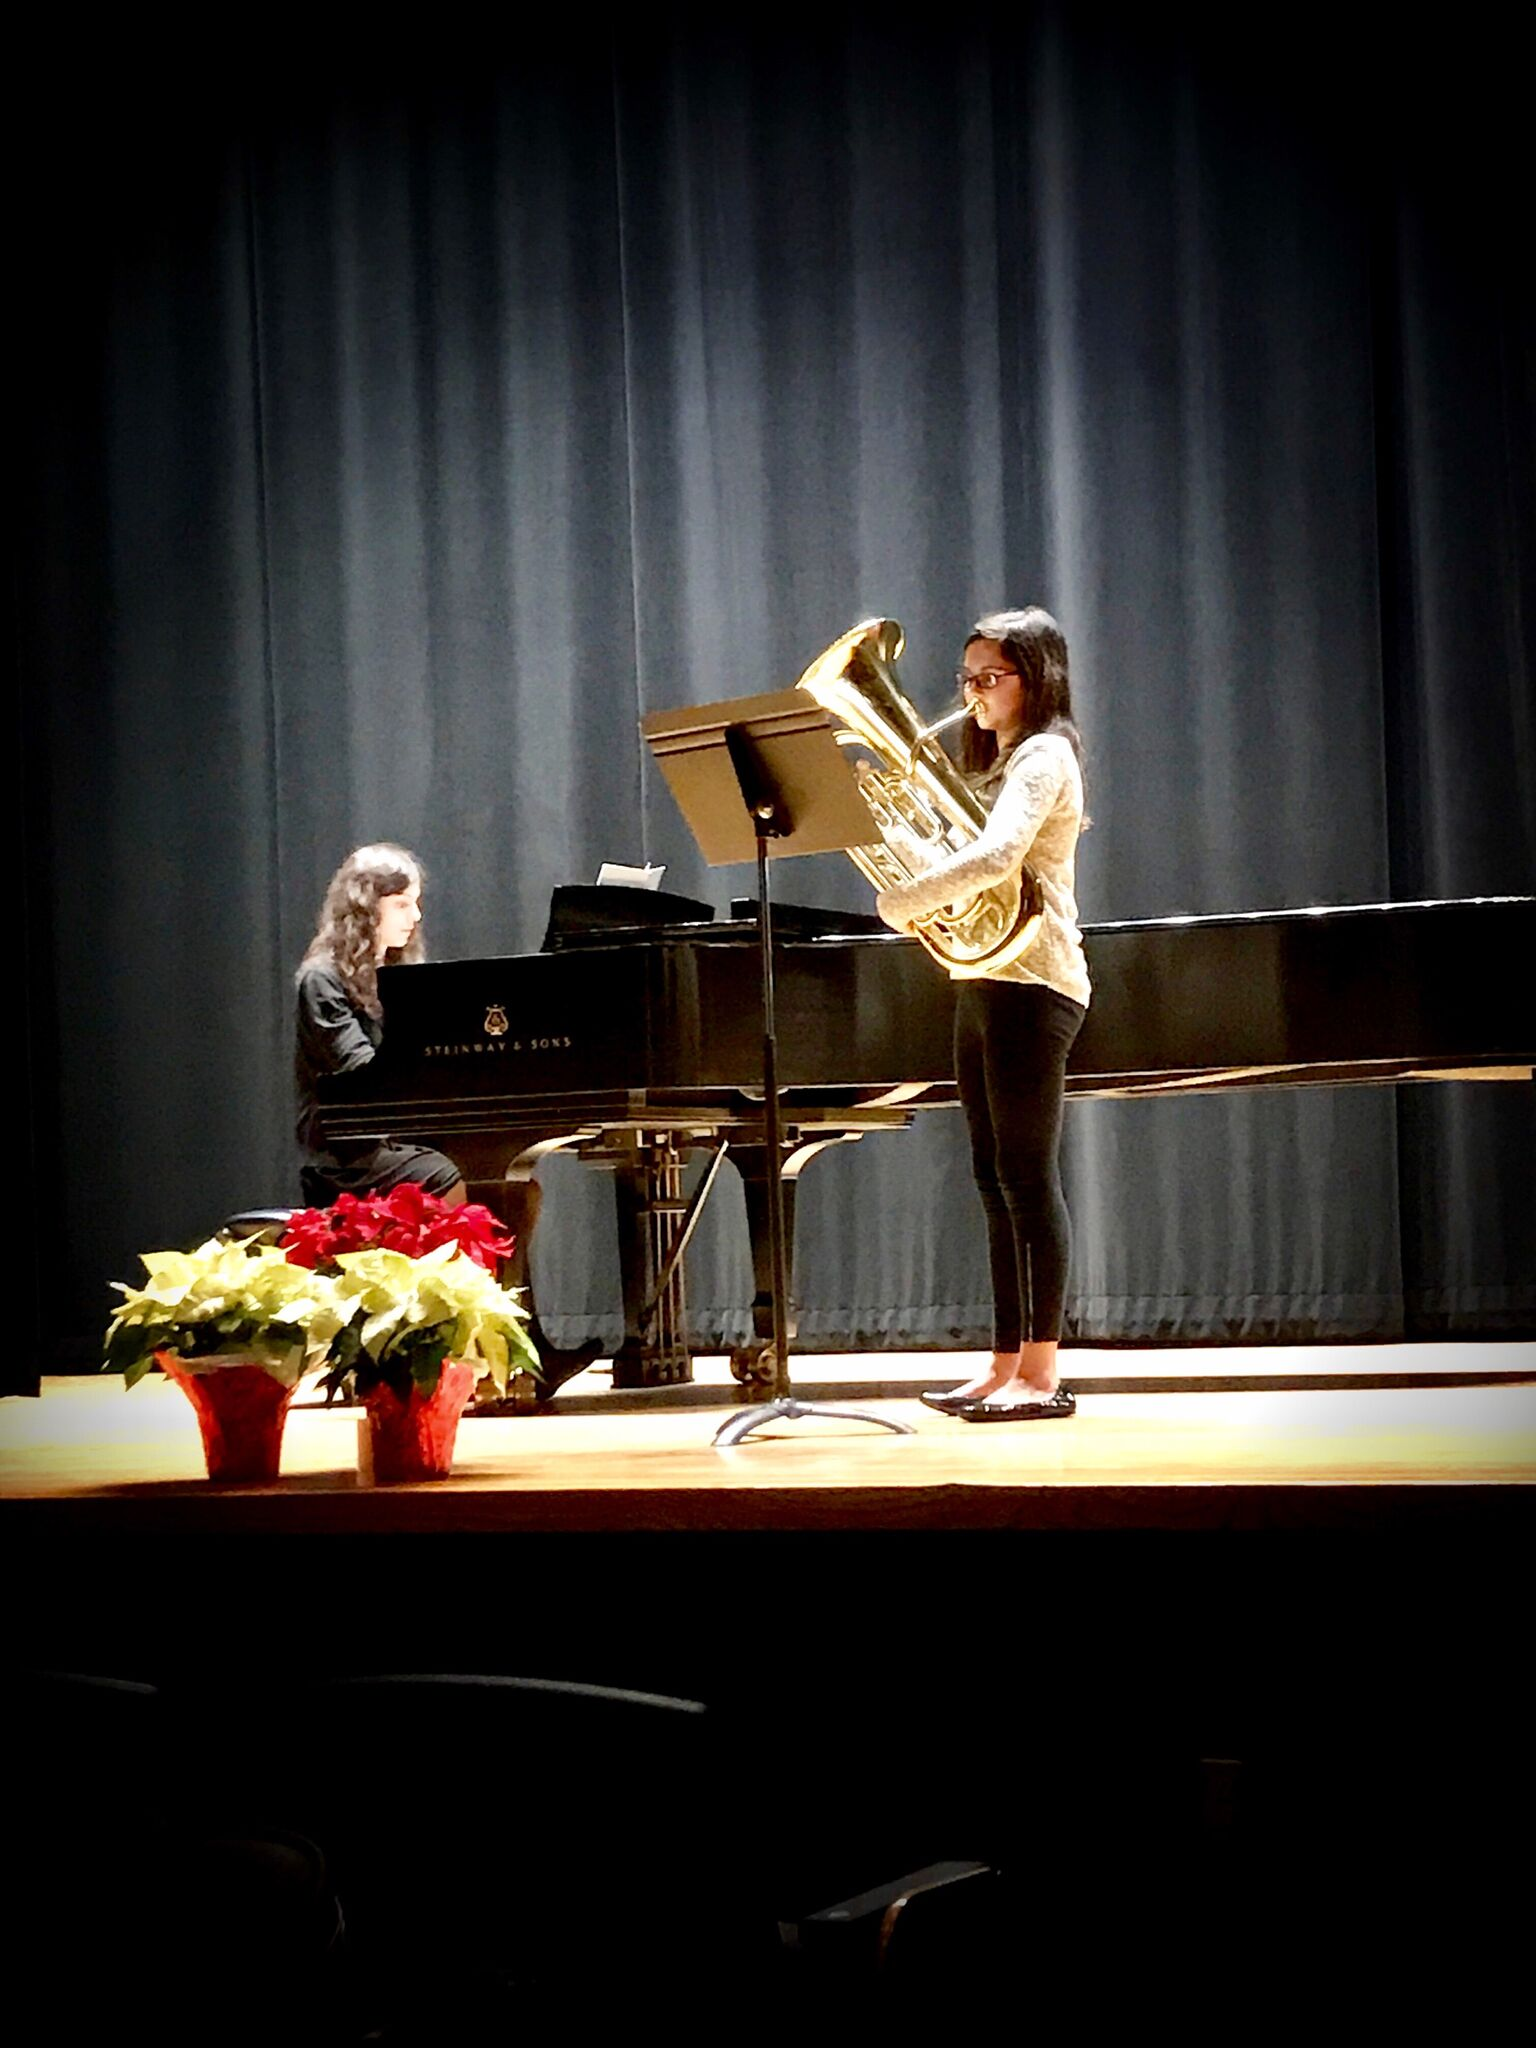 a young student performs on tuba while accompanied on piano